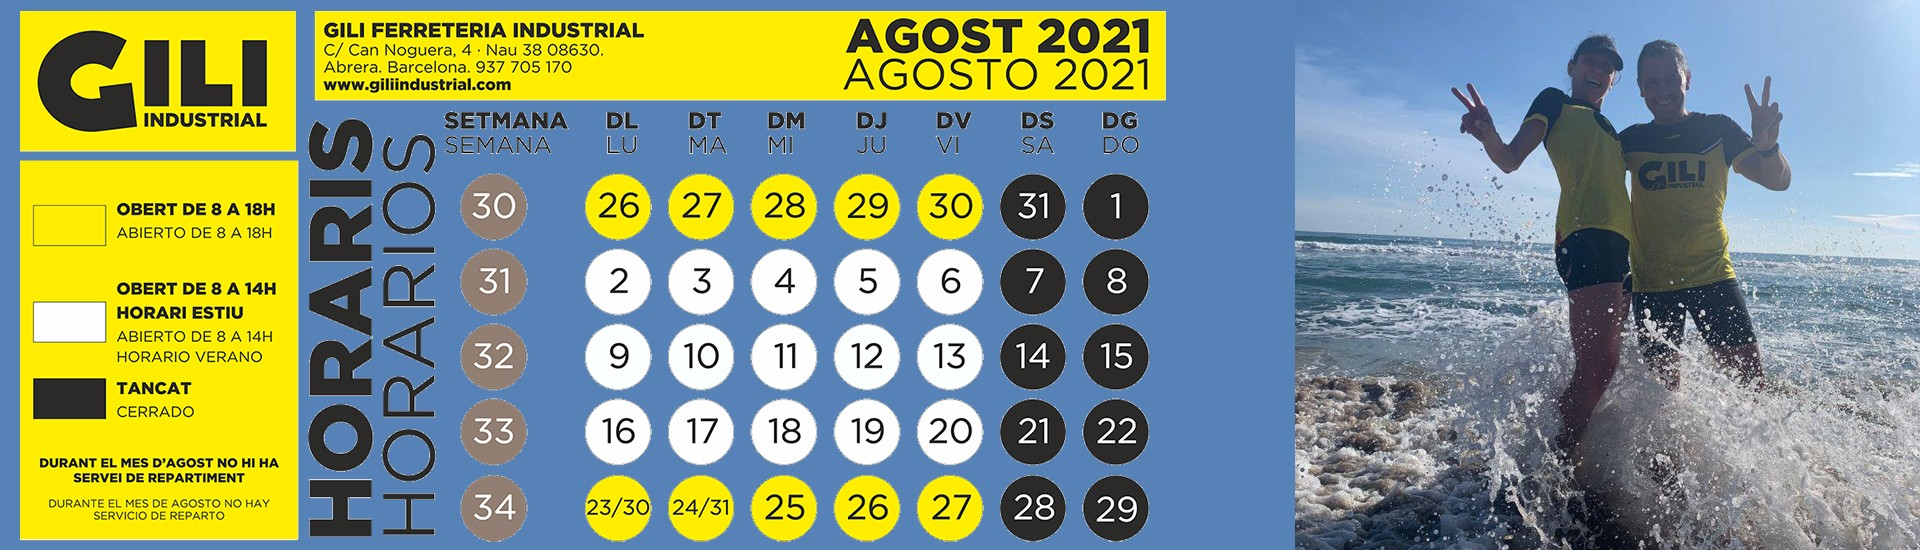 AGOST 2021